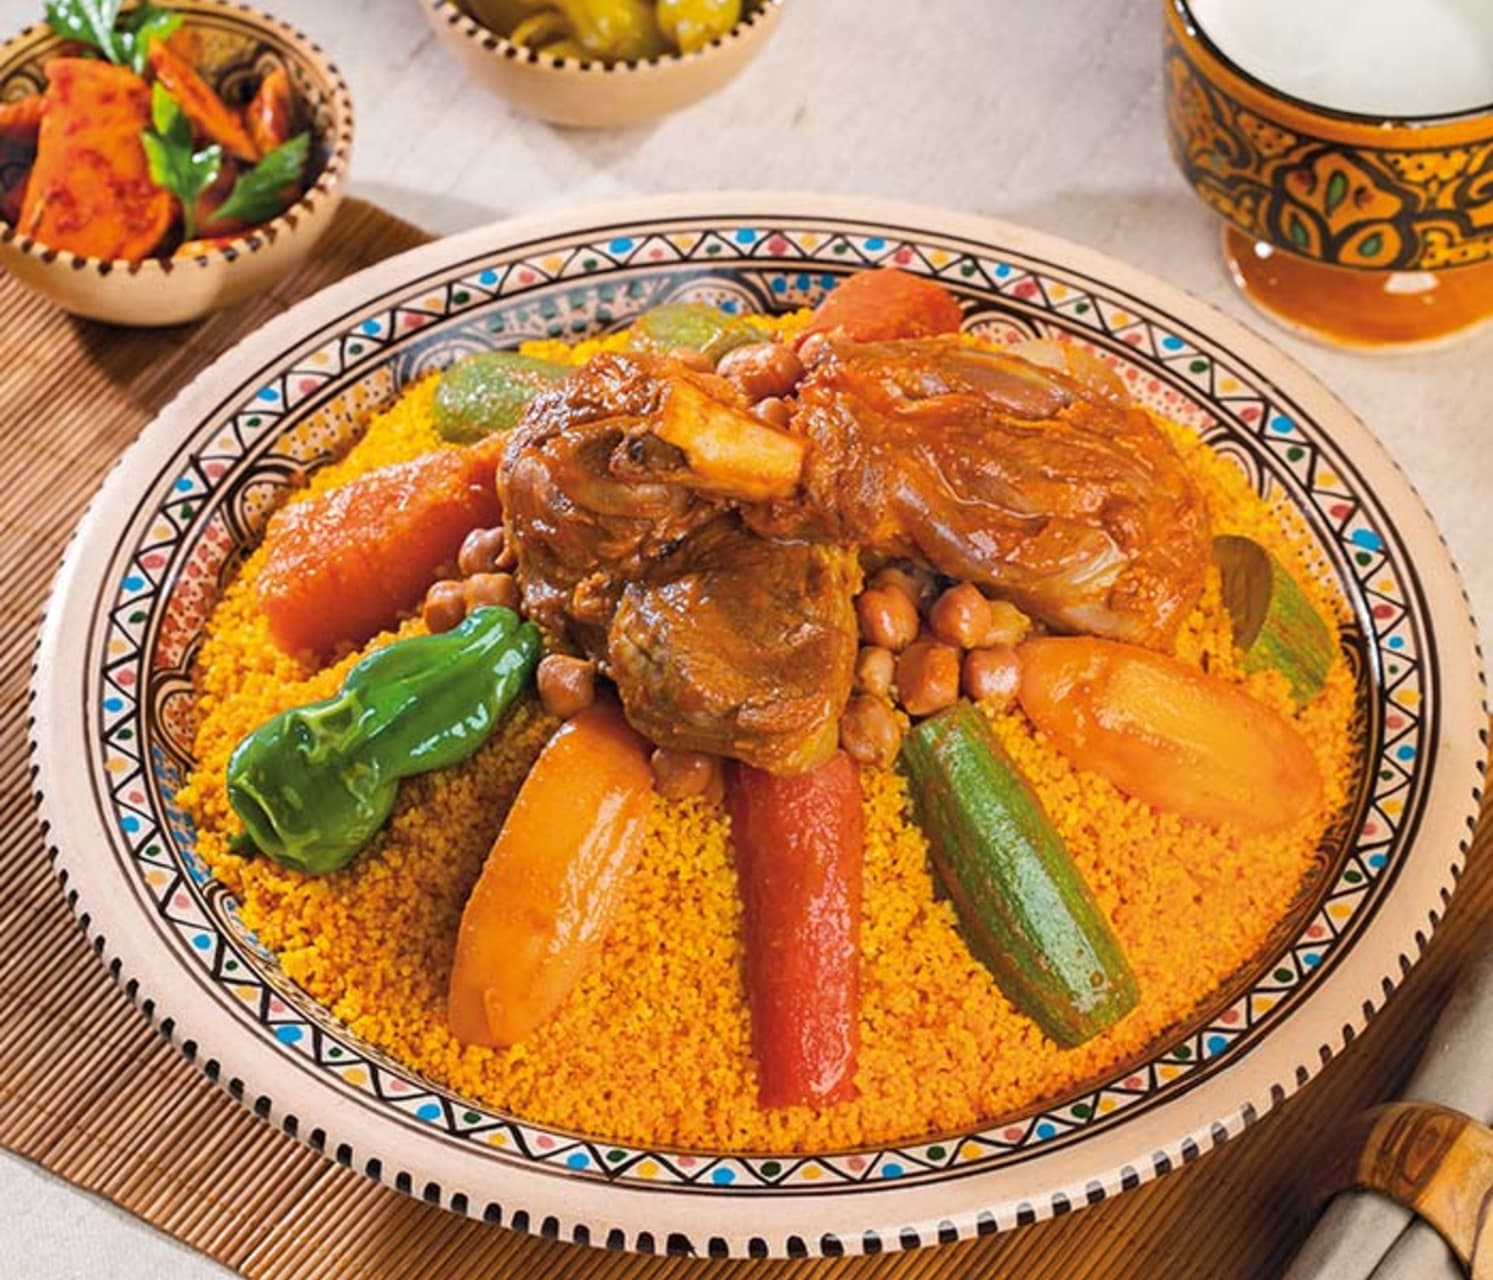 Tunis & Carthage - Tunisian Culinary experience Couscous with Lamb & Vegetables